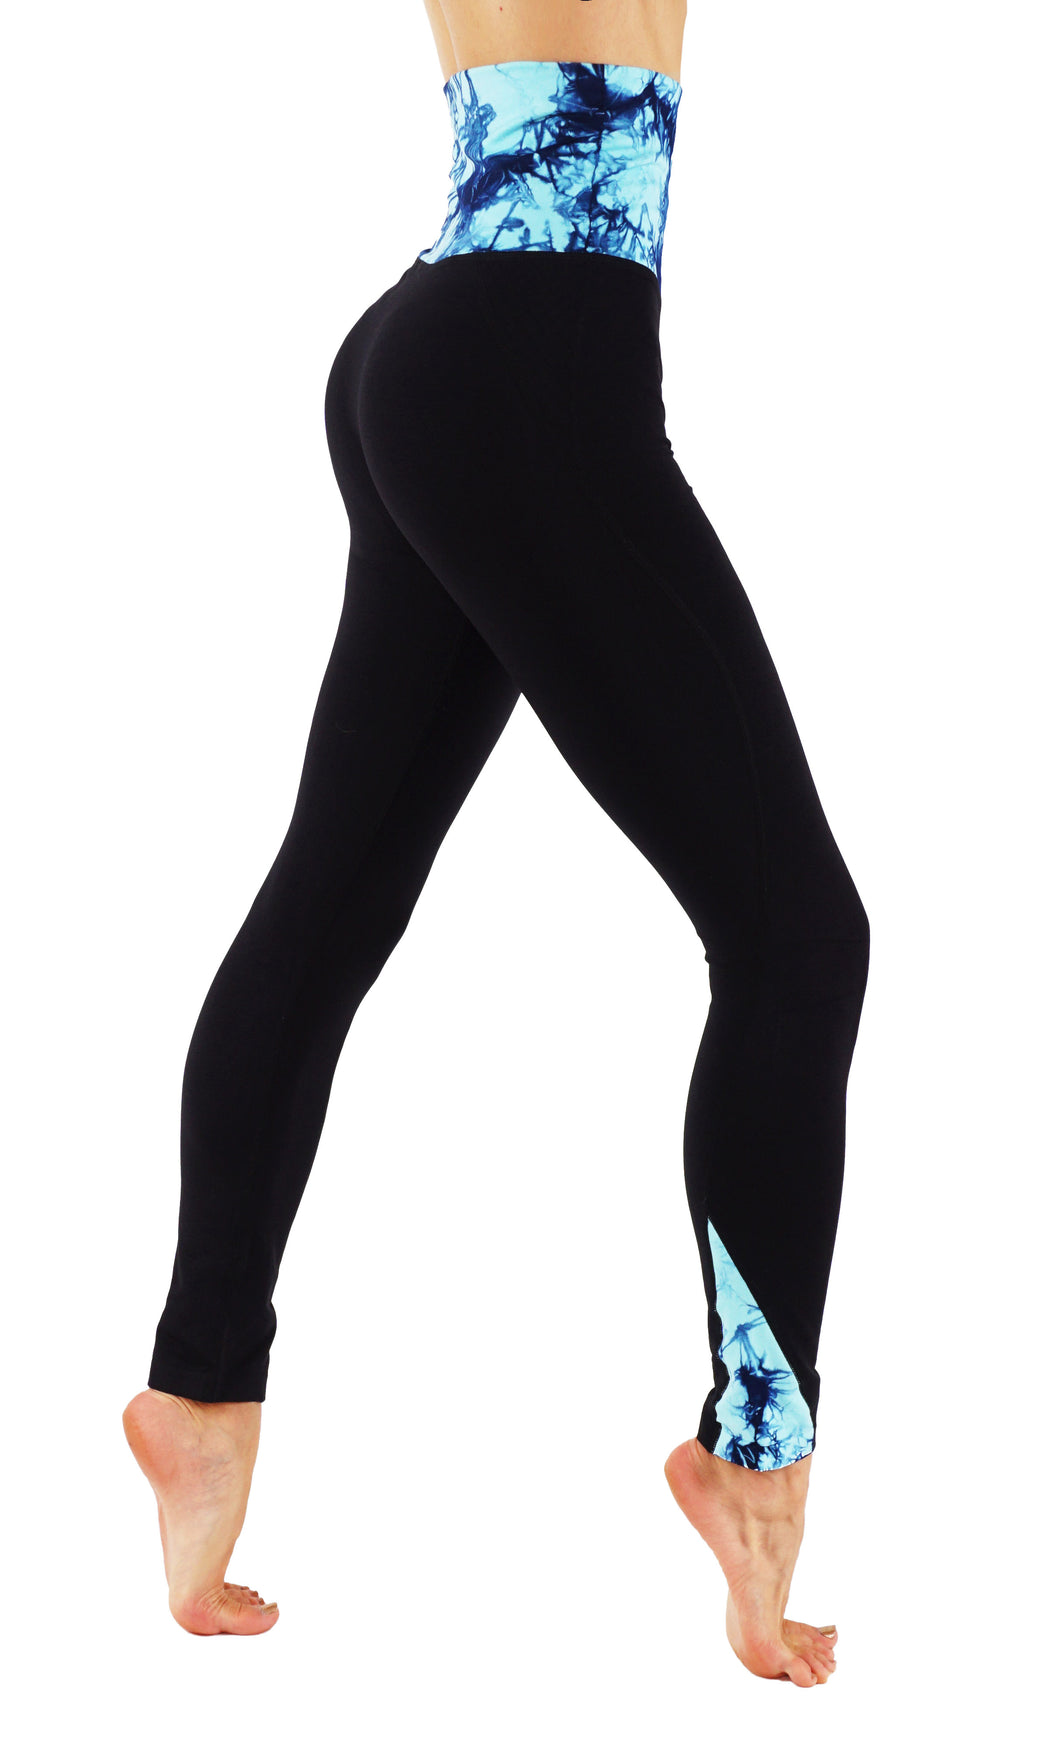 Yoga High Waist band Leggings Y002